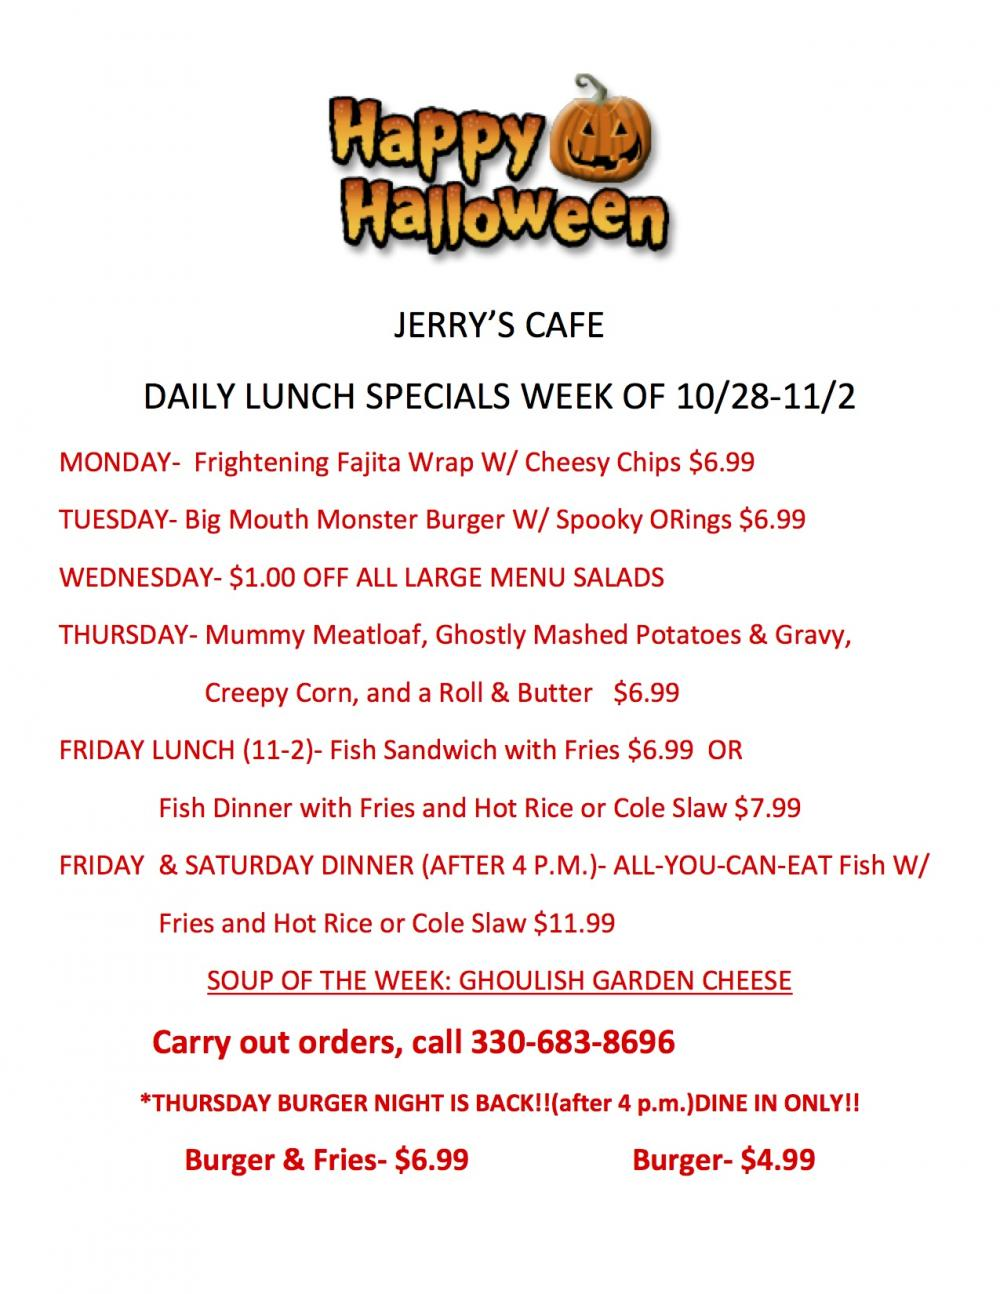 Daily lunch specials week of 10 28 11 2 jerry 39 s cafe for Lunch specials